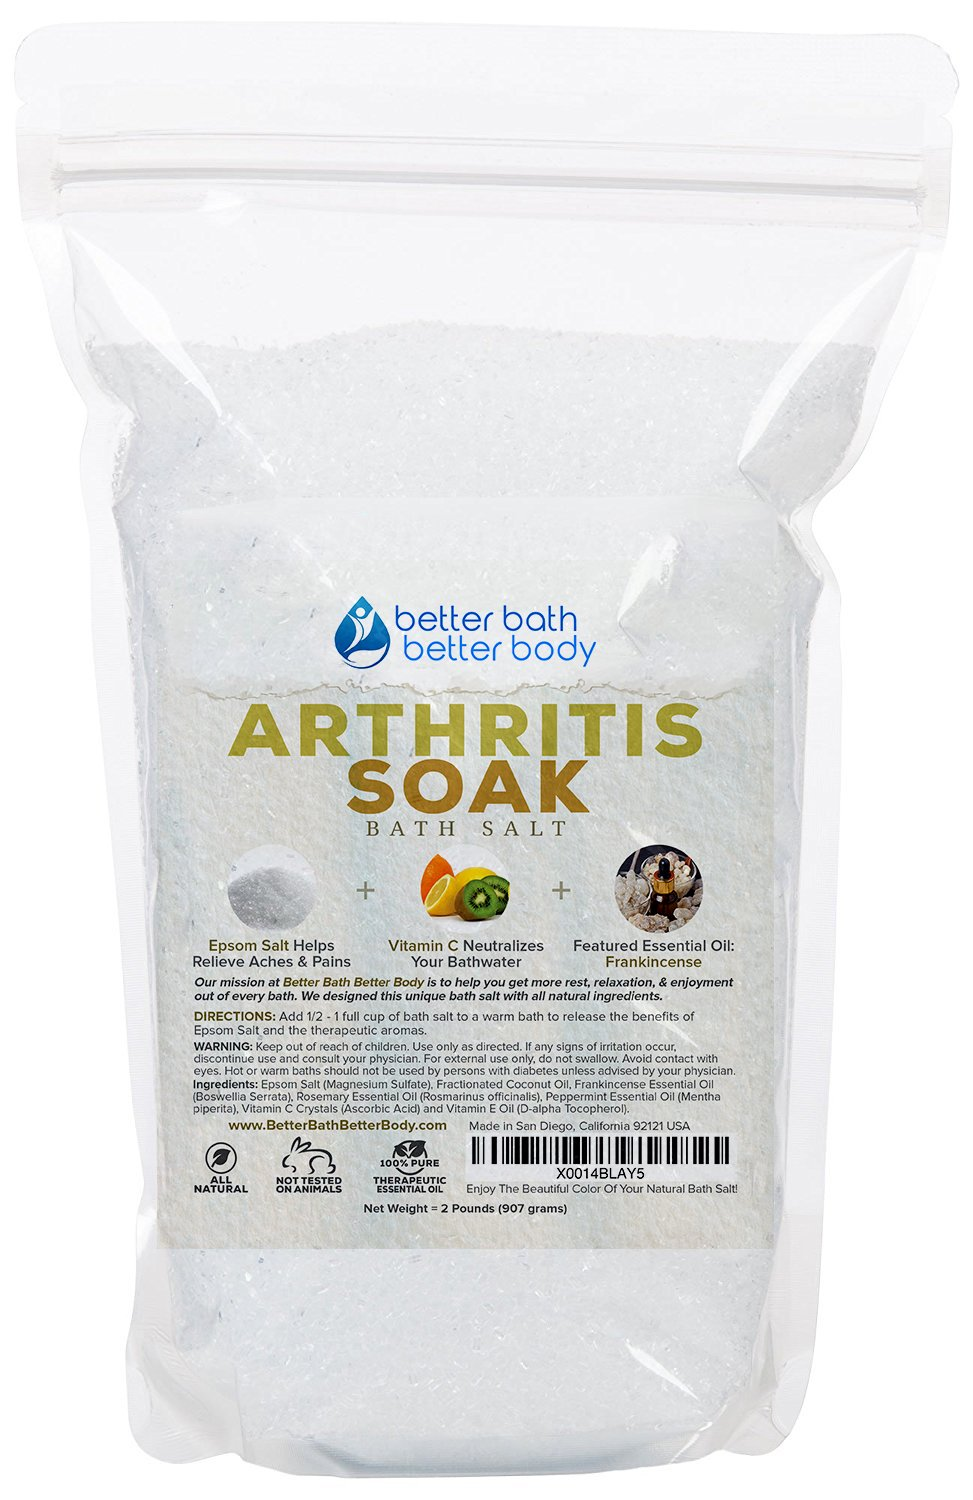 Arthritis Bath Salt 32oz (2-Lbs) - Epsom Salt Bath Soak With Frankincense Essential Oil & Vitamin C - Get Arthritis Relief With This Natural Bath Soak - All Natural No Perfumes No Dyes